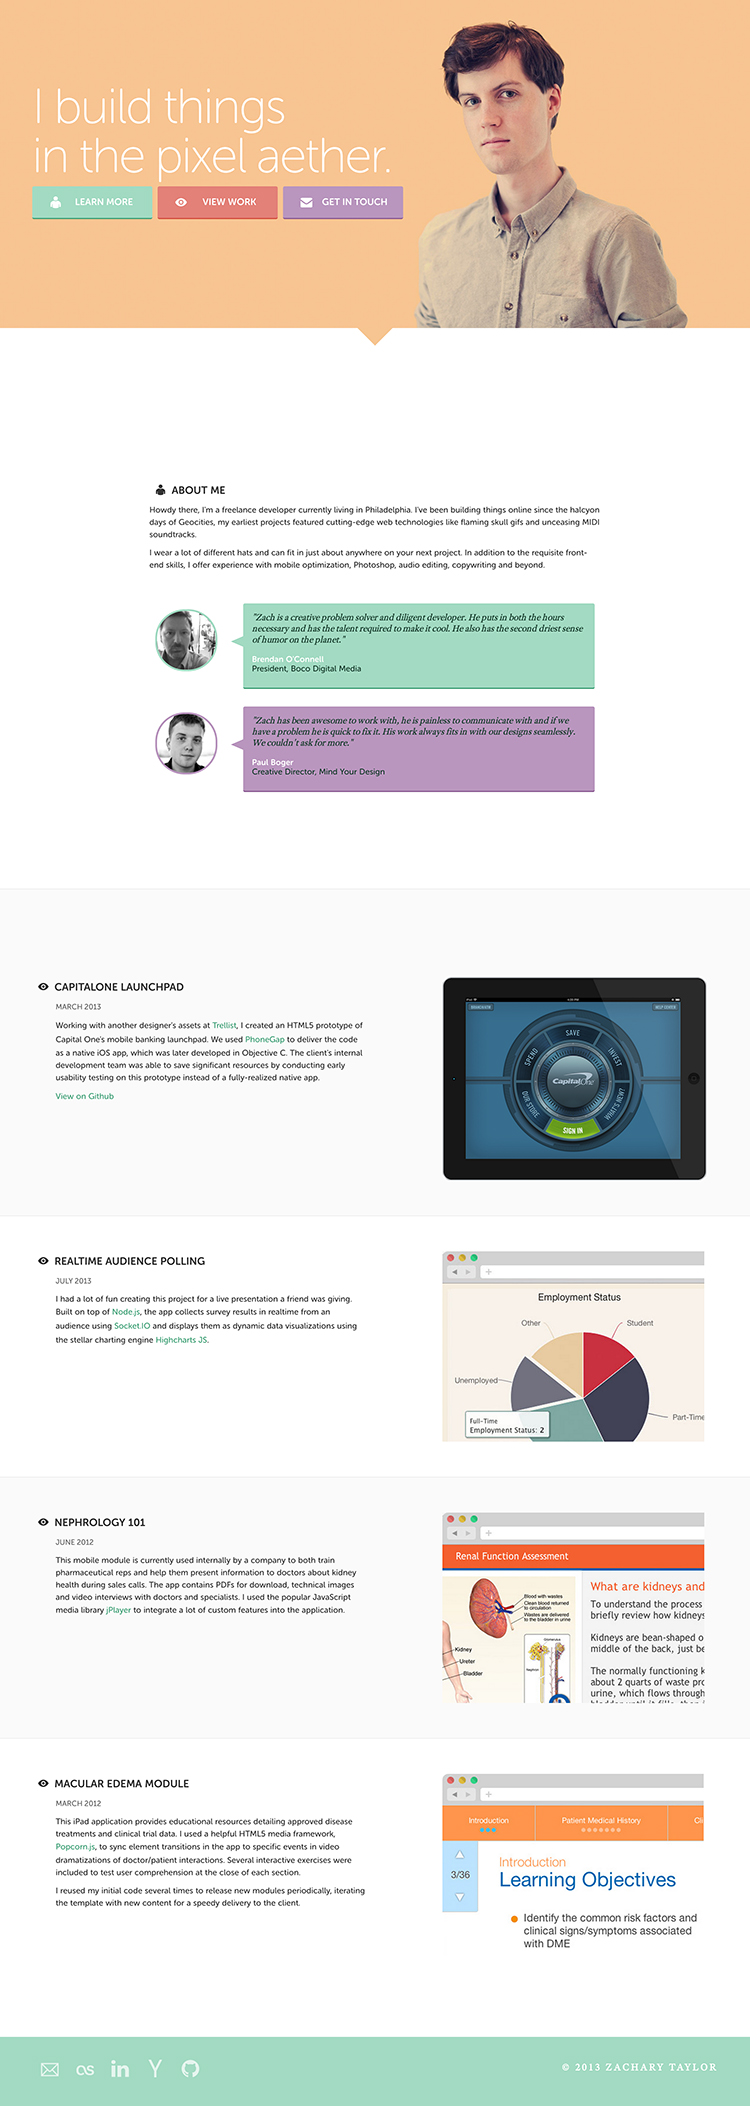 One page portfolio site for Zachary Taylor - an example of flat ui design